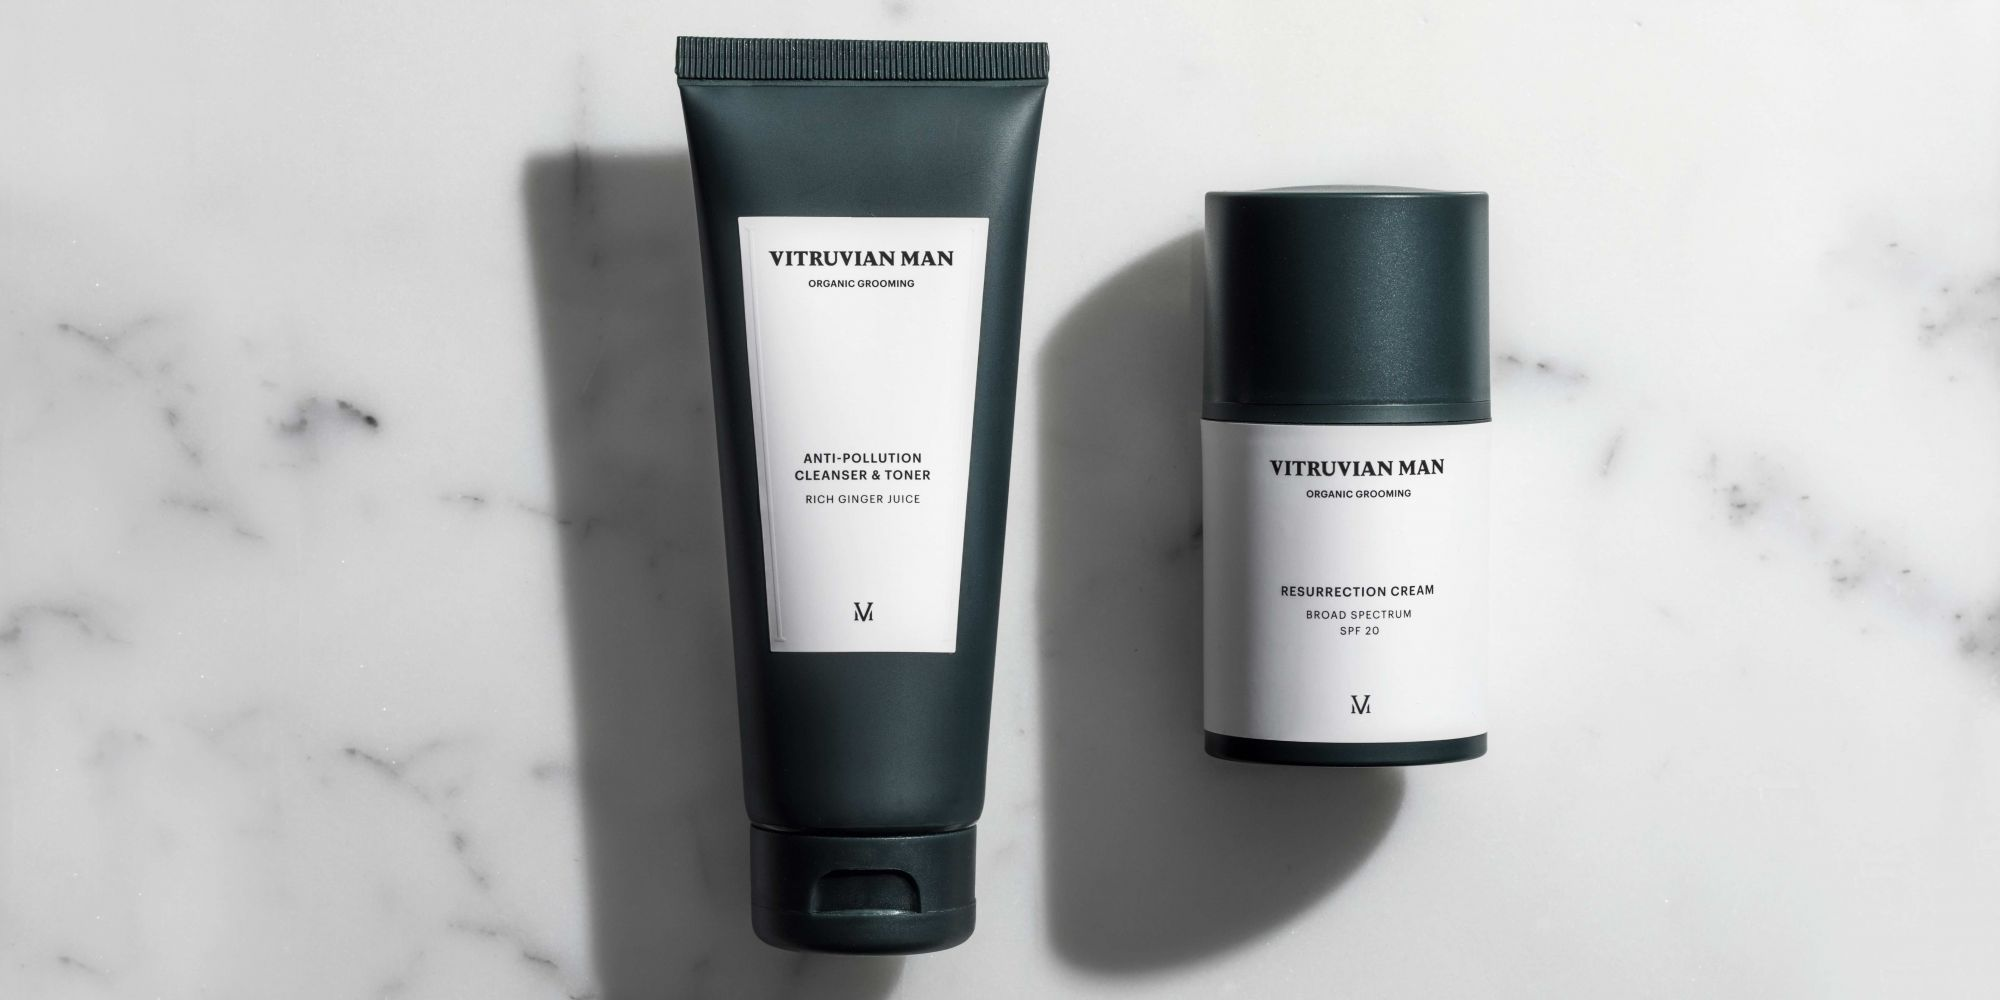 Sophistication In Simplicity: Vitruvian Man Elevates Men's Morning Routines With Two Products